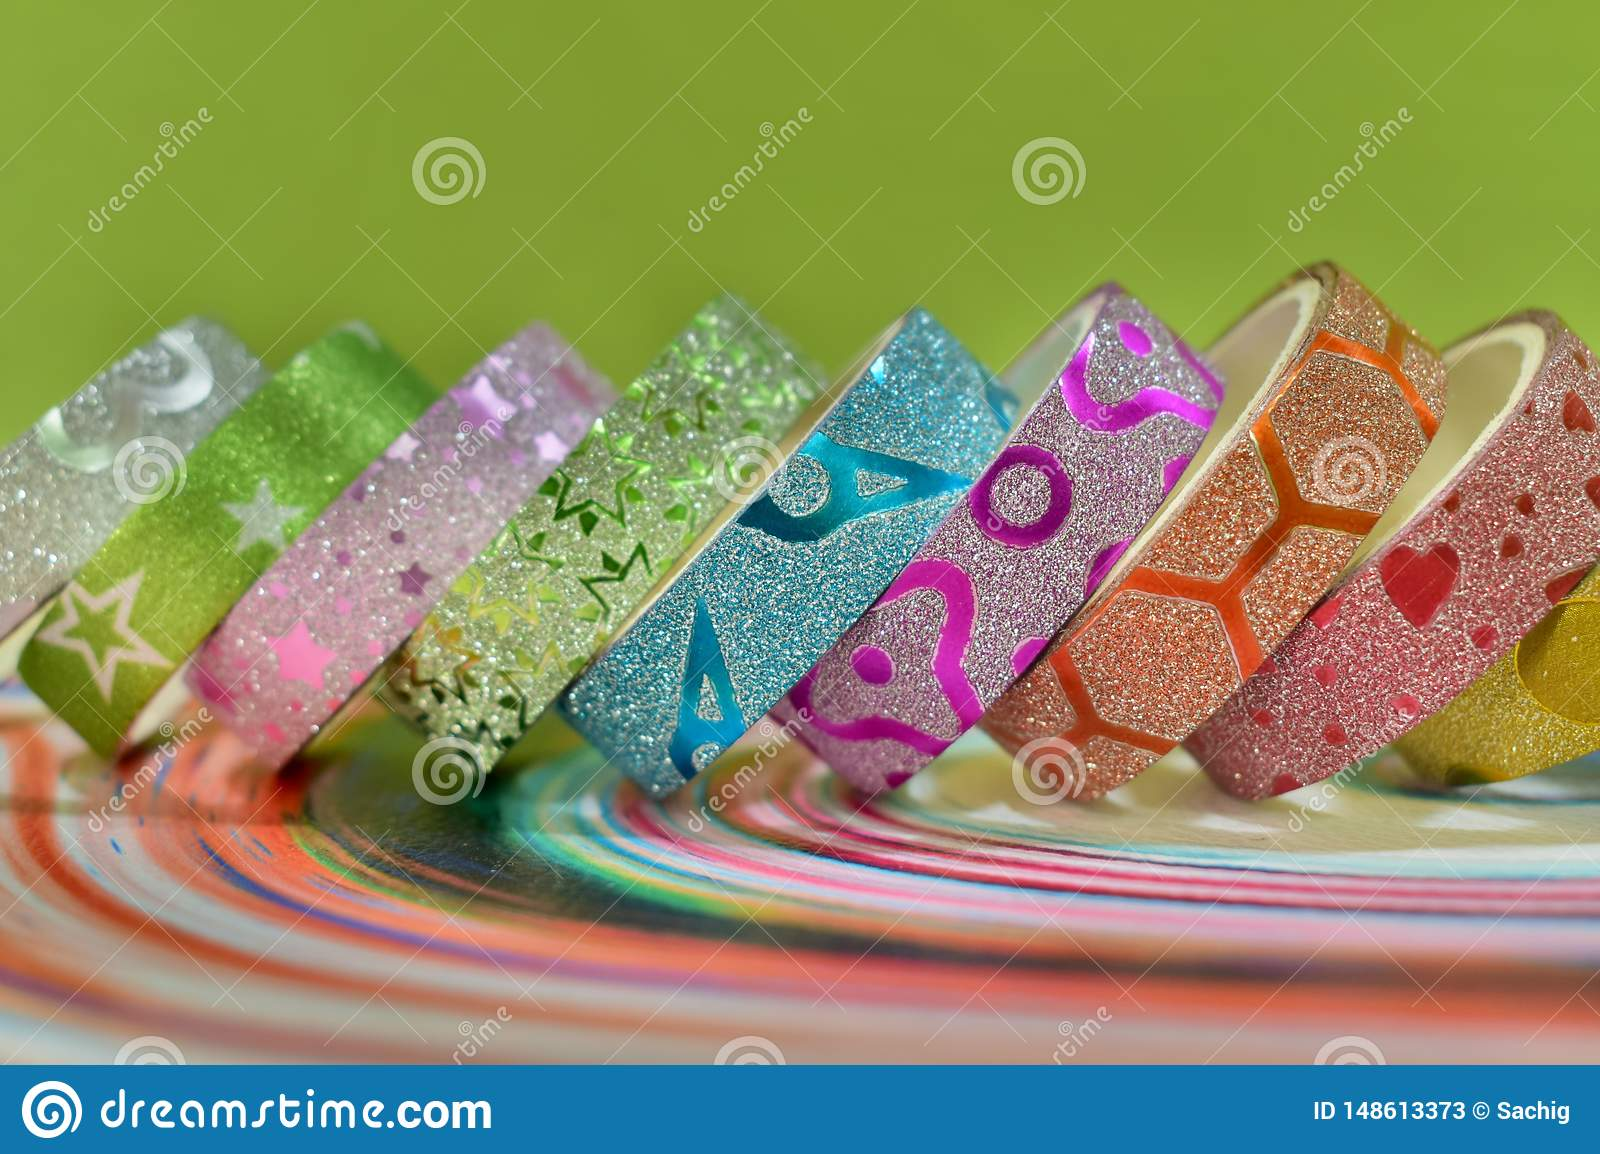 Beautiful Colourful Glitter Texture Designed Adhesive Tape